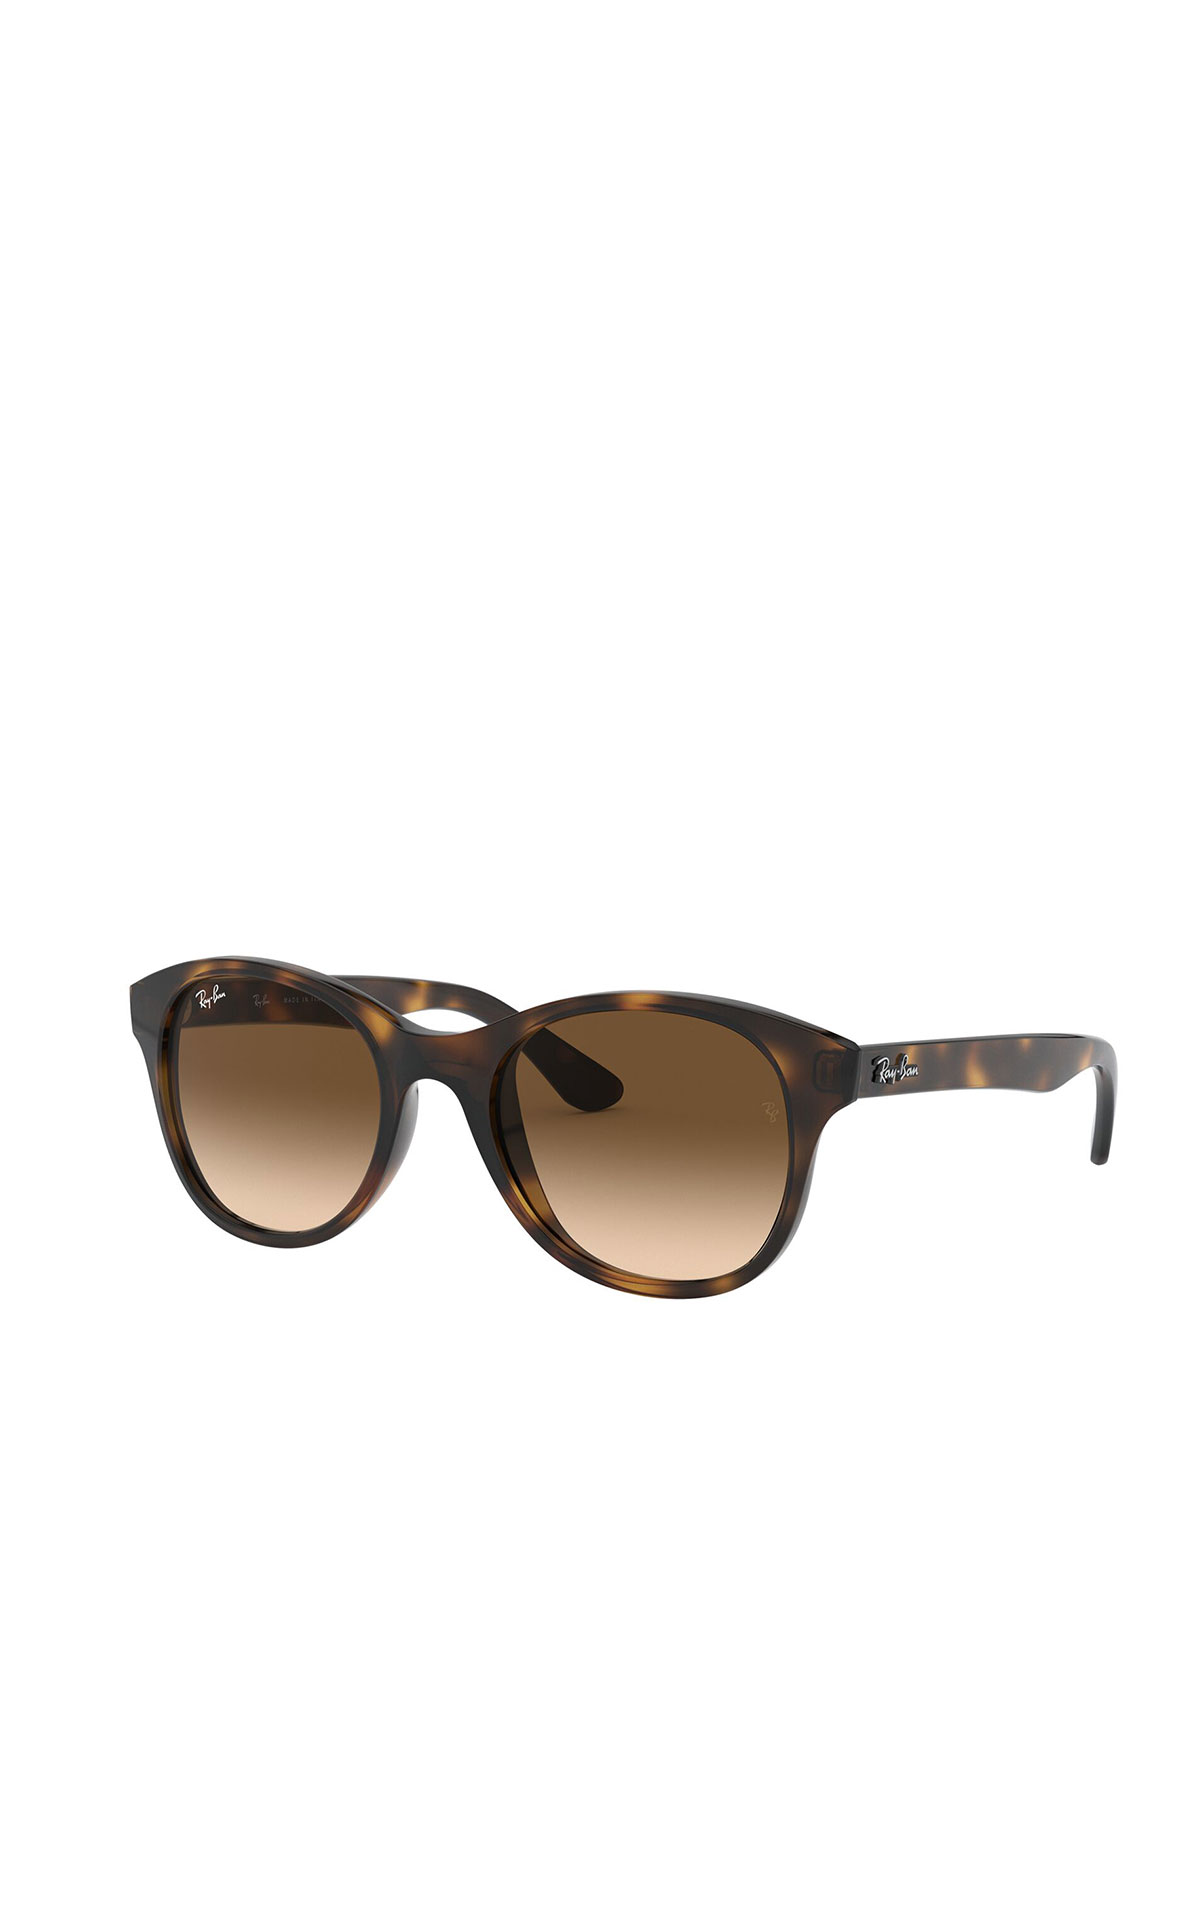 David Clulow Ray-Ban 0RB4203 from Bicester Village